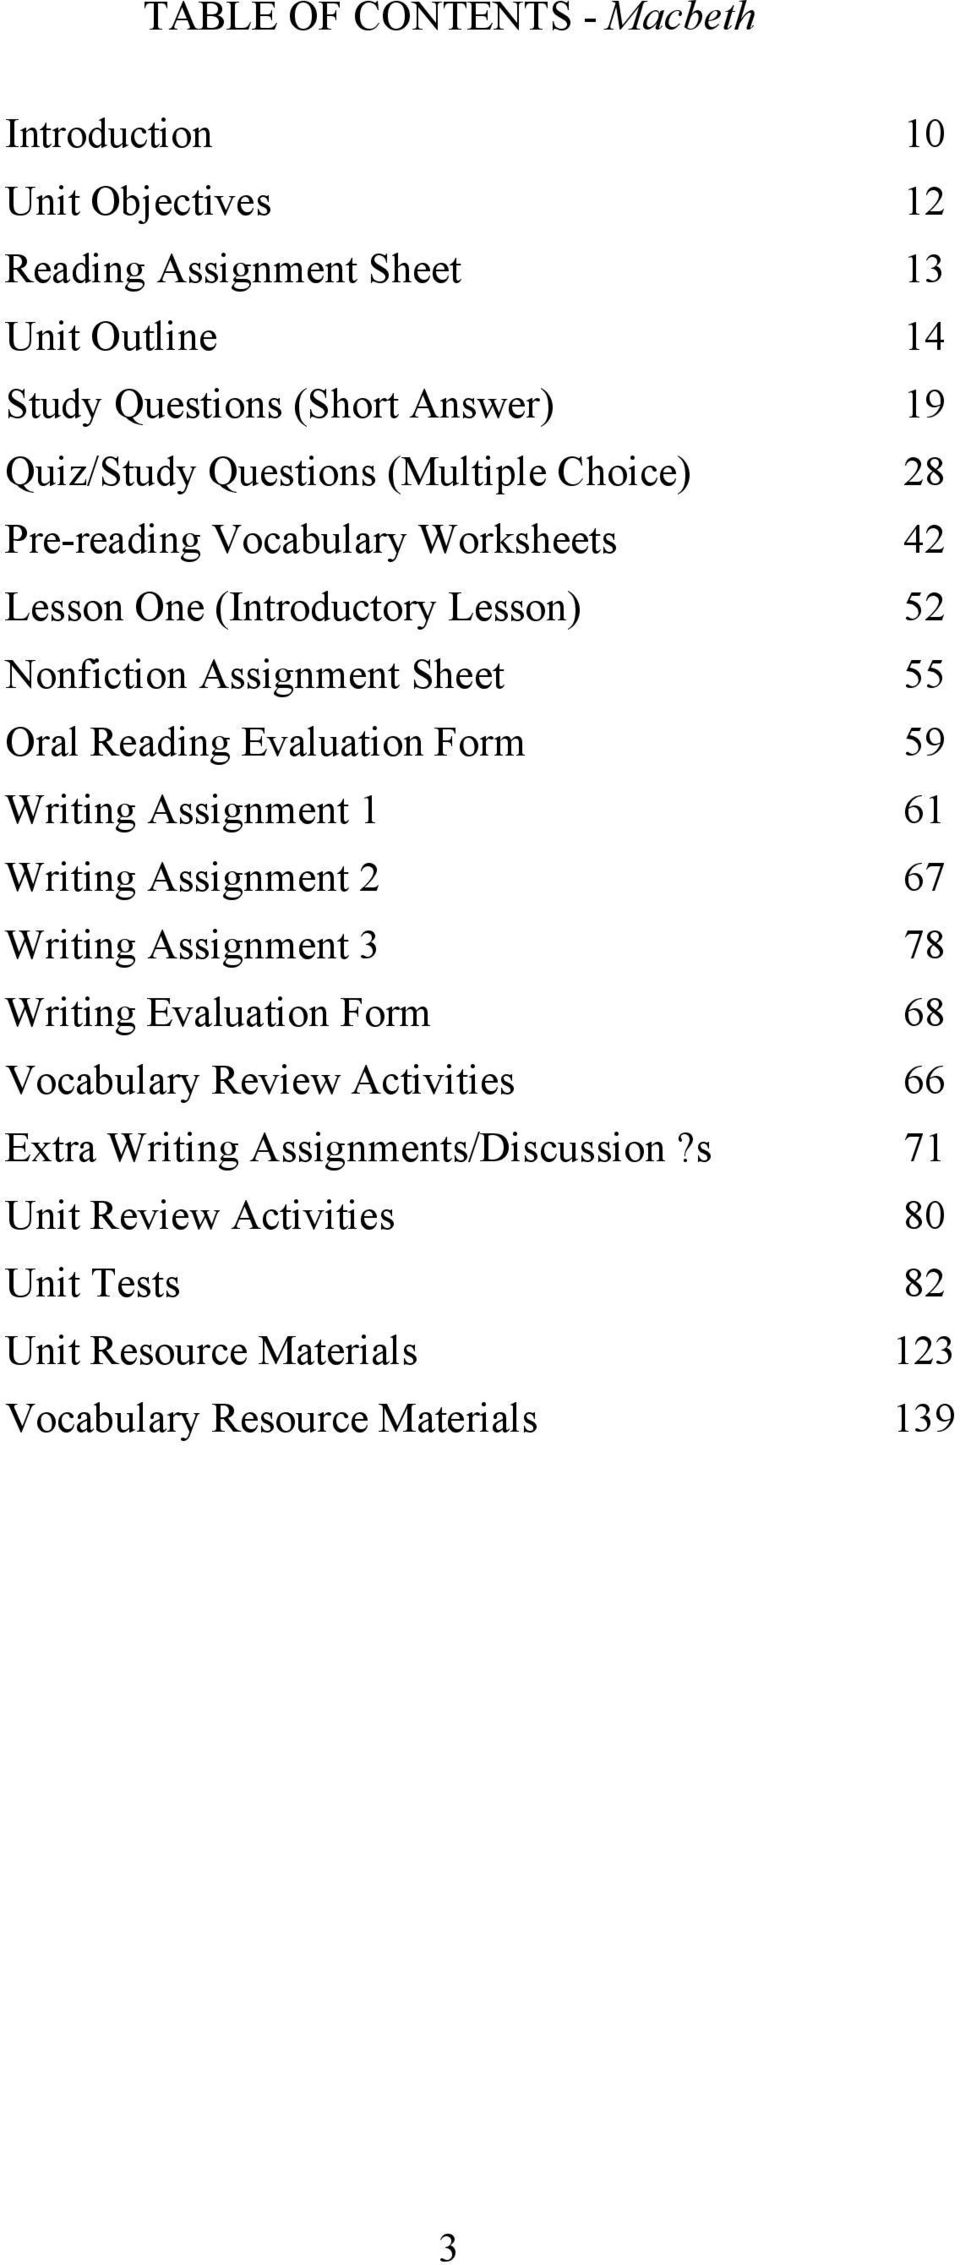 Oral Reading Evaluation Form 59 Writing Assignment 1 61 Writing Assignment  2 67 Writing Assignment 3